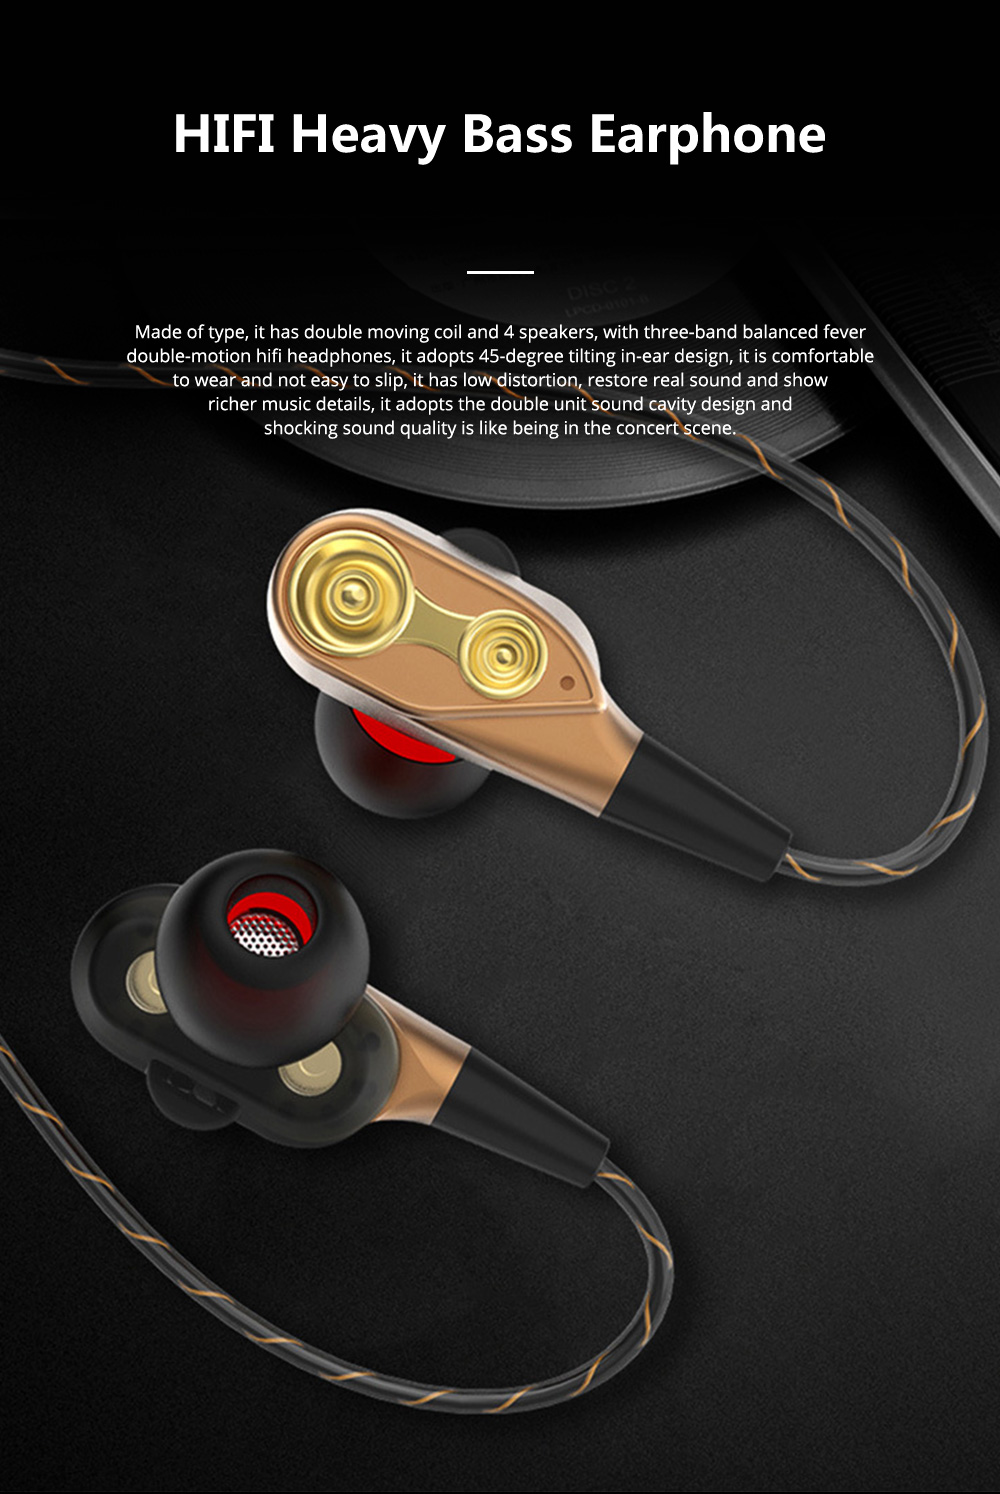 HIFI Heavy Bass Metal Sports Headsets Wired Mobile Phone In Ear Earphone Type C HD Voice Headphones For Cell Phone MP3 Player 0